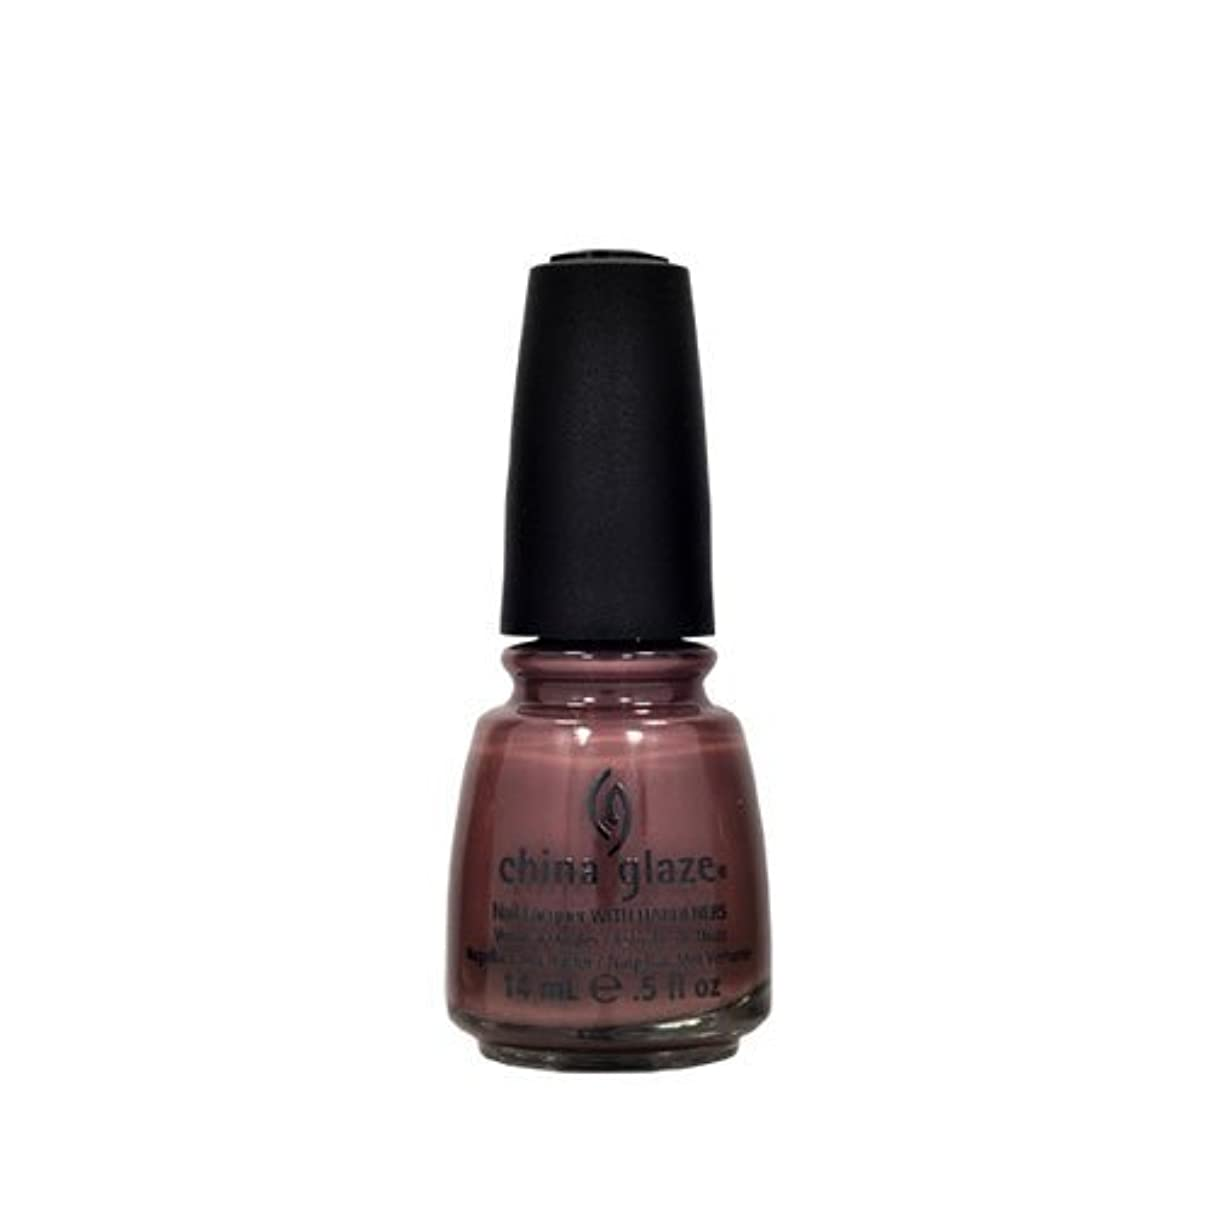 旧正月凍った気性CHINA GLAZE Capitol Colours - The Hunger Games Collection - Foie Gras (並行輸入品)